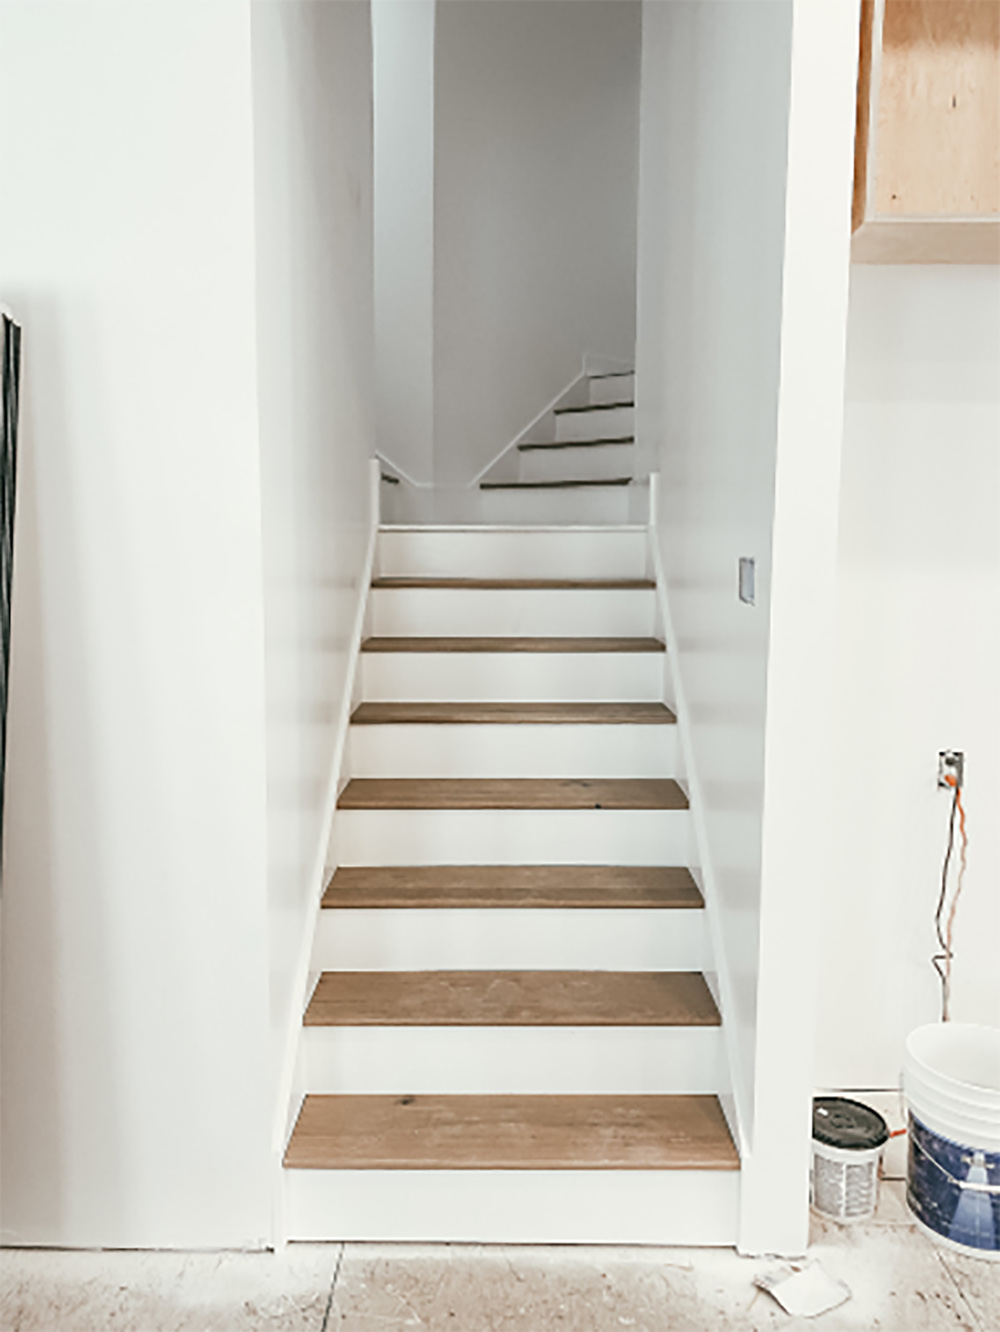 In home staircase